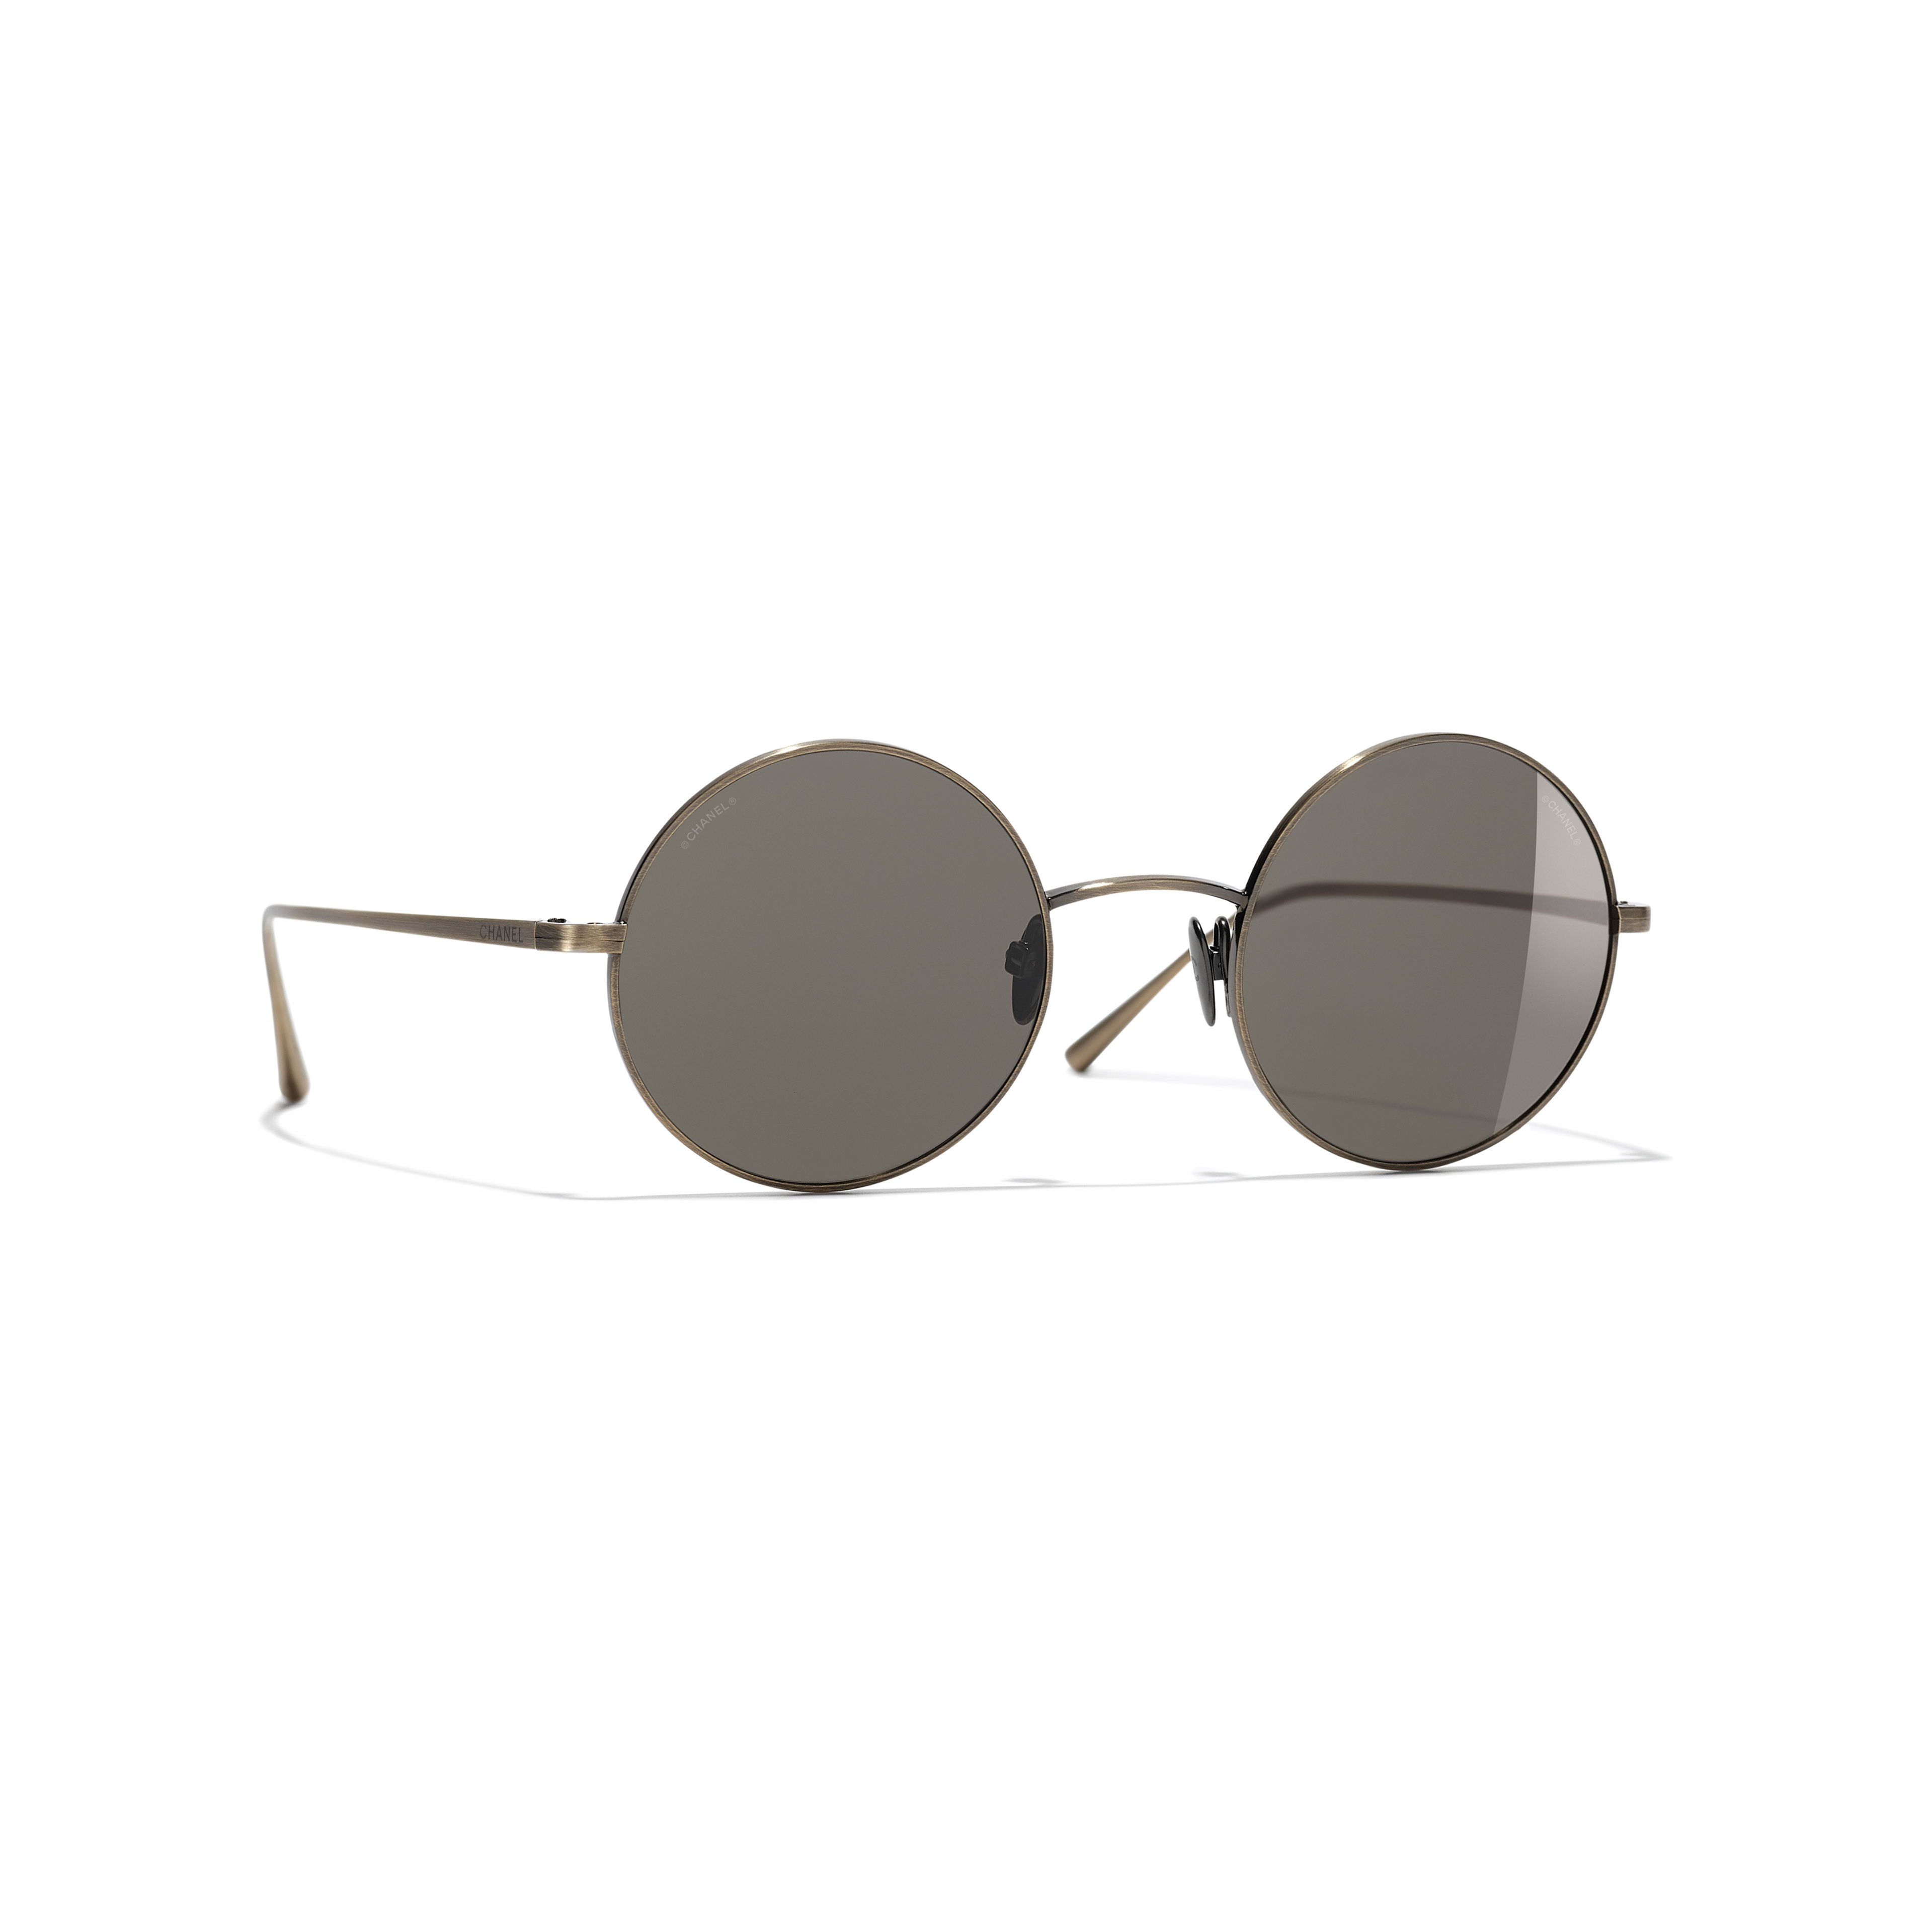 Round Sunglasses - Gold - Titanium - Default view - see full sized version